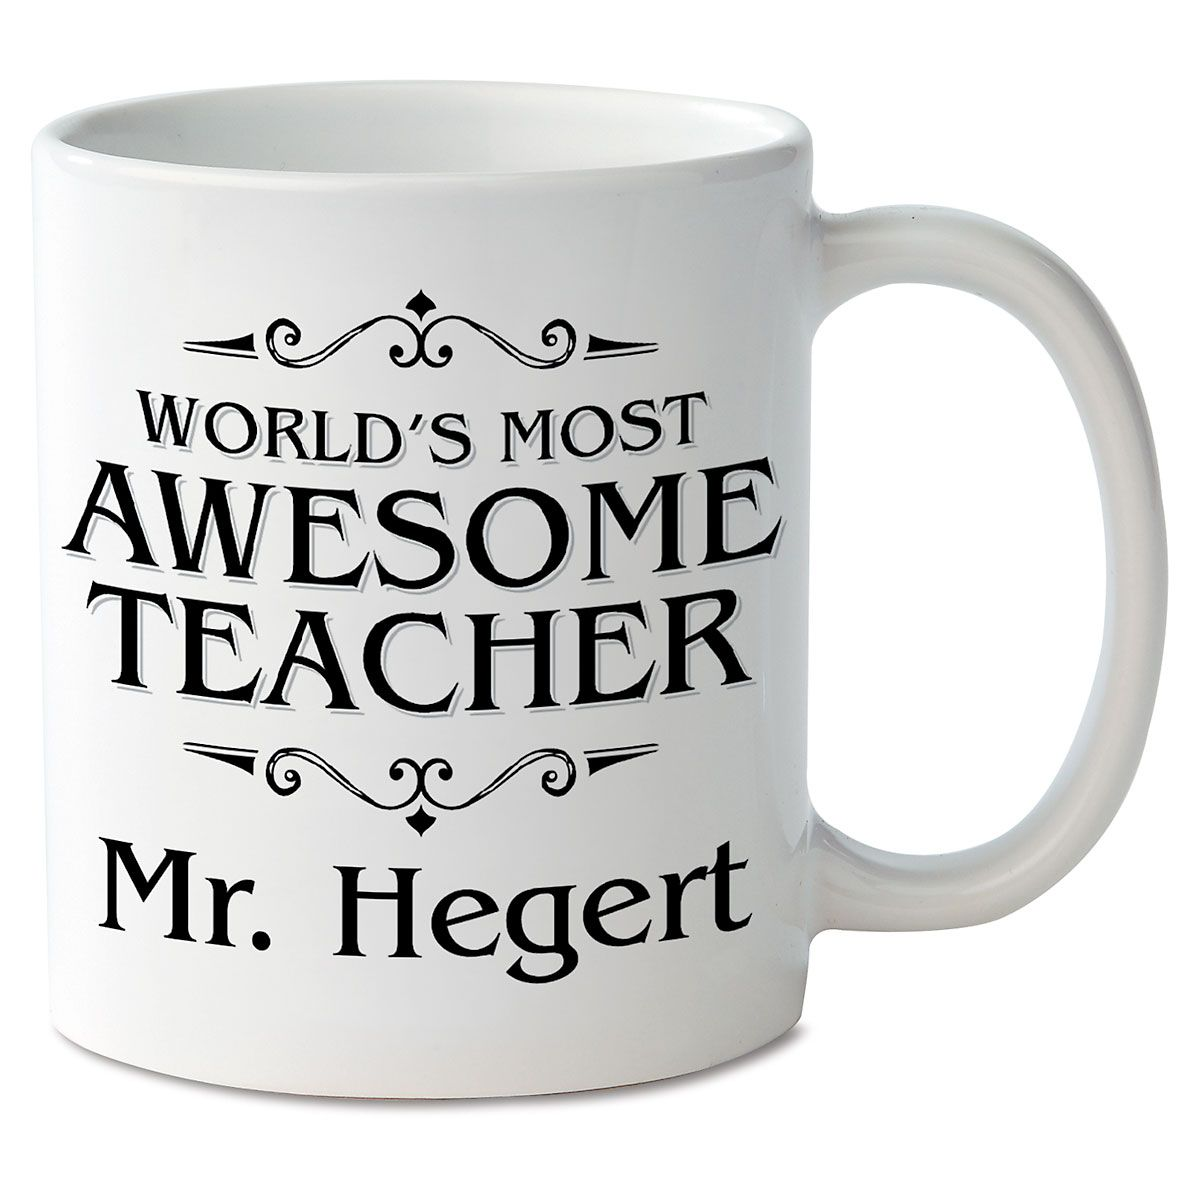 World's Most Awesome Teacher Personalized Mug